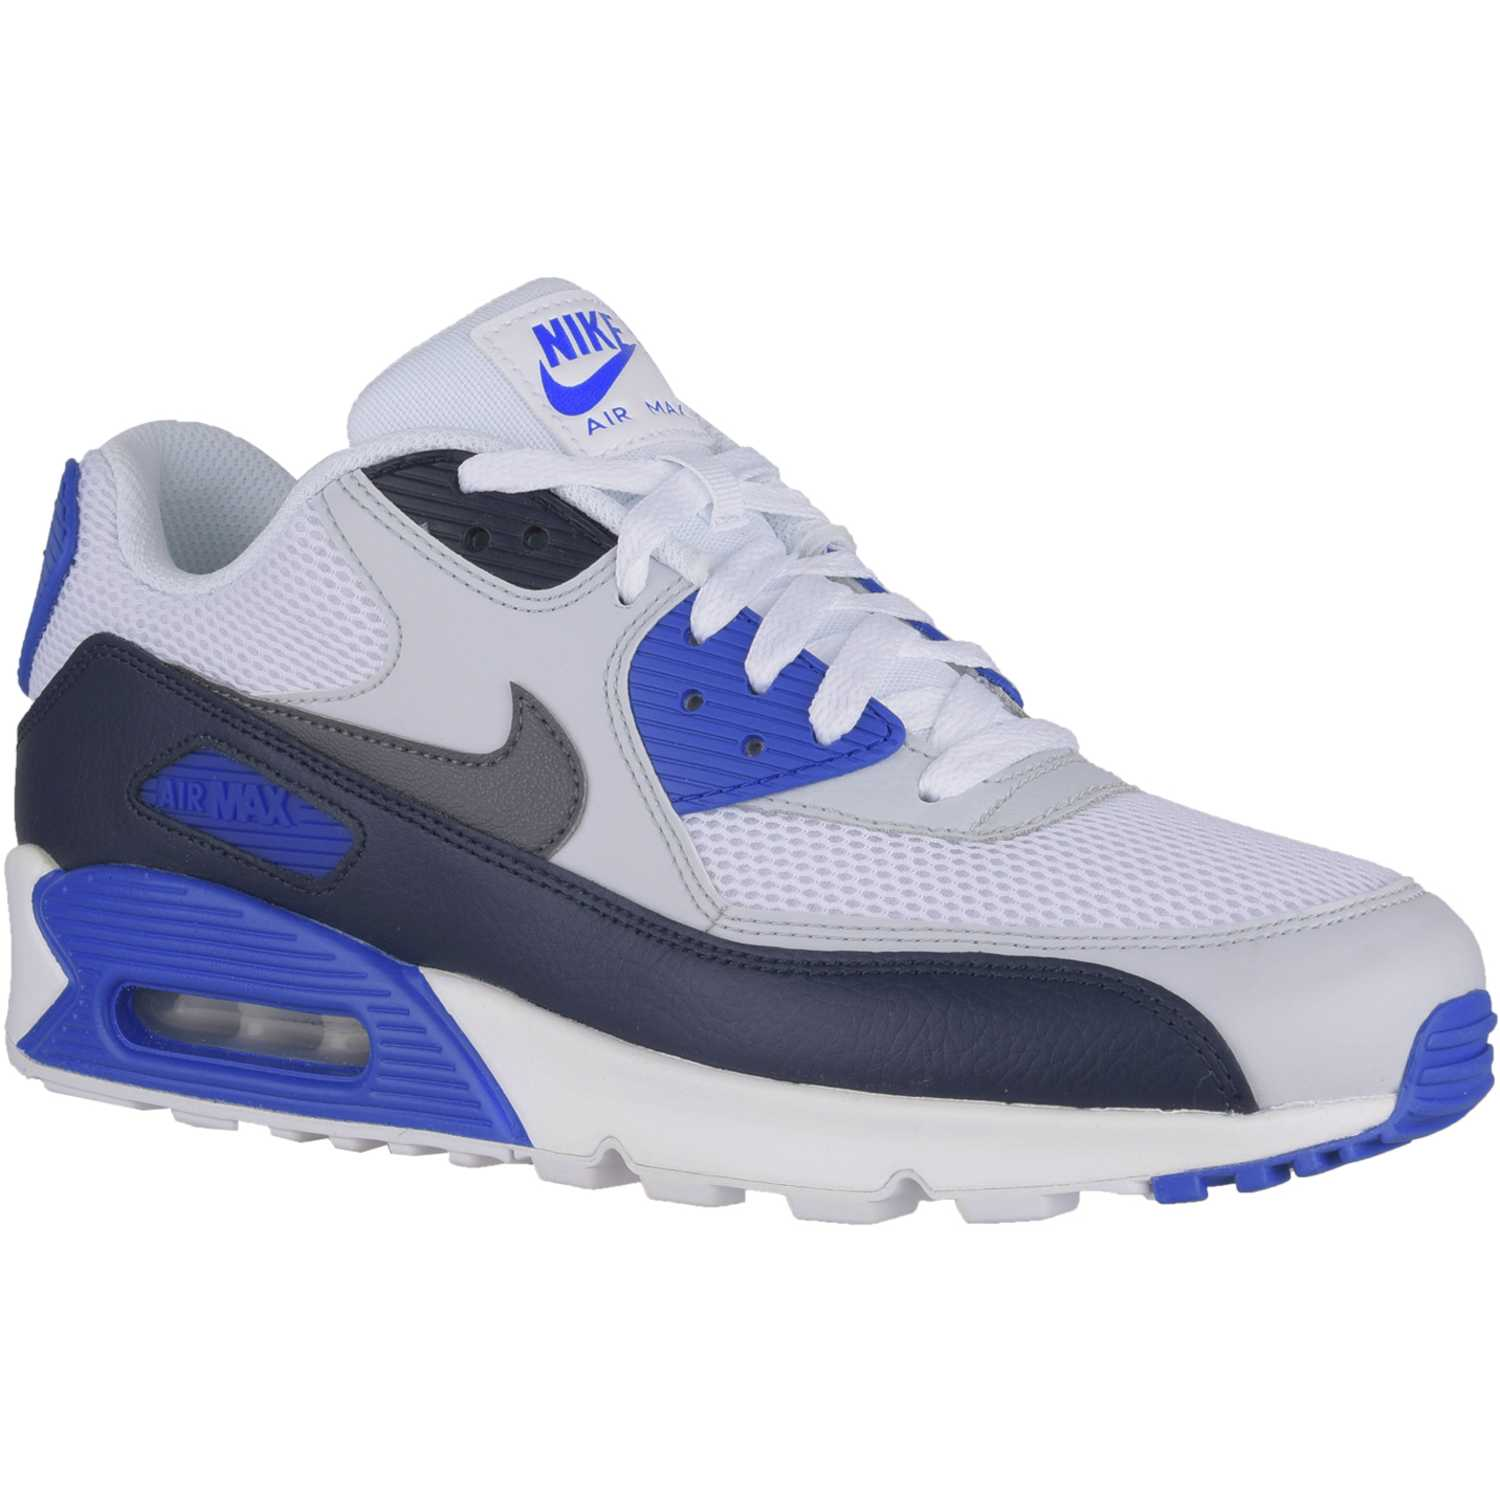 reaccionar amargo Obediencia  Nike air max 90 essential Blanco / azul Walking | platanitos.com